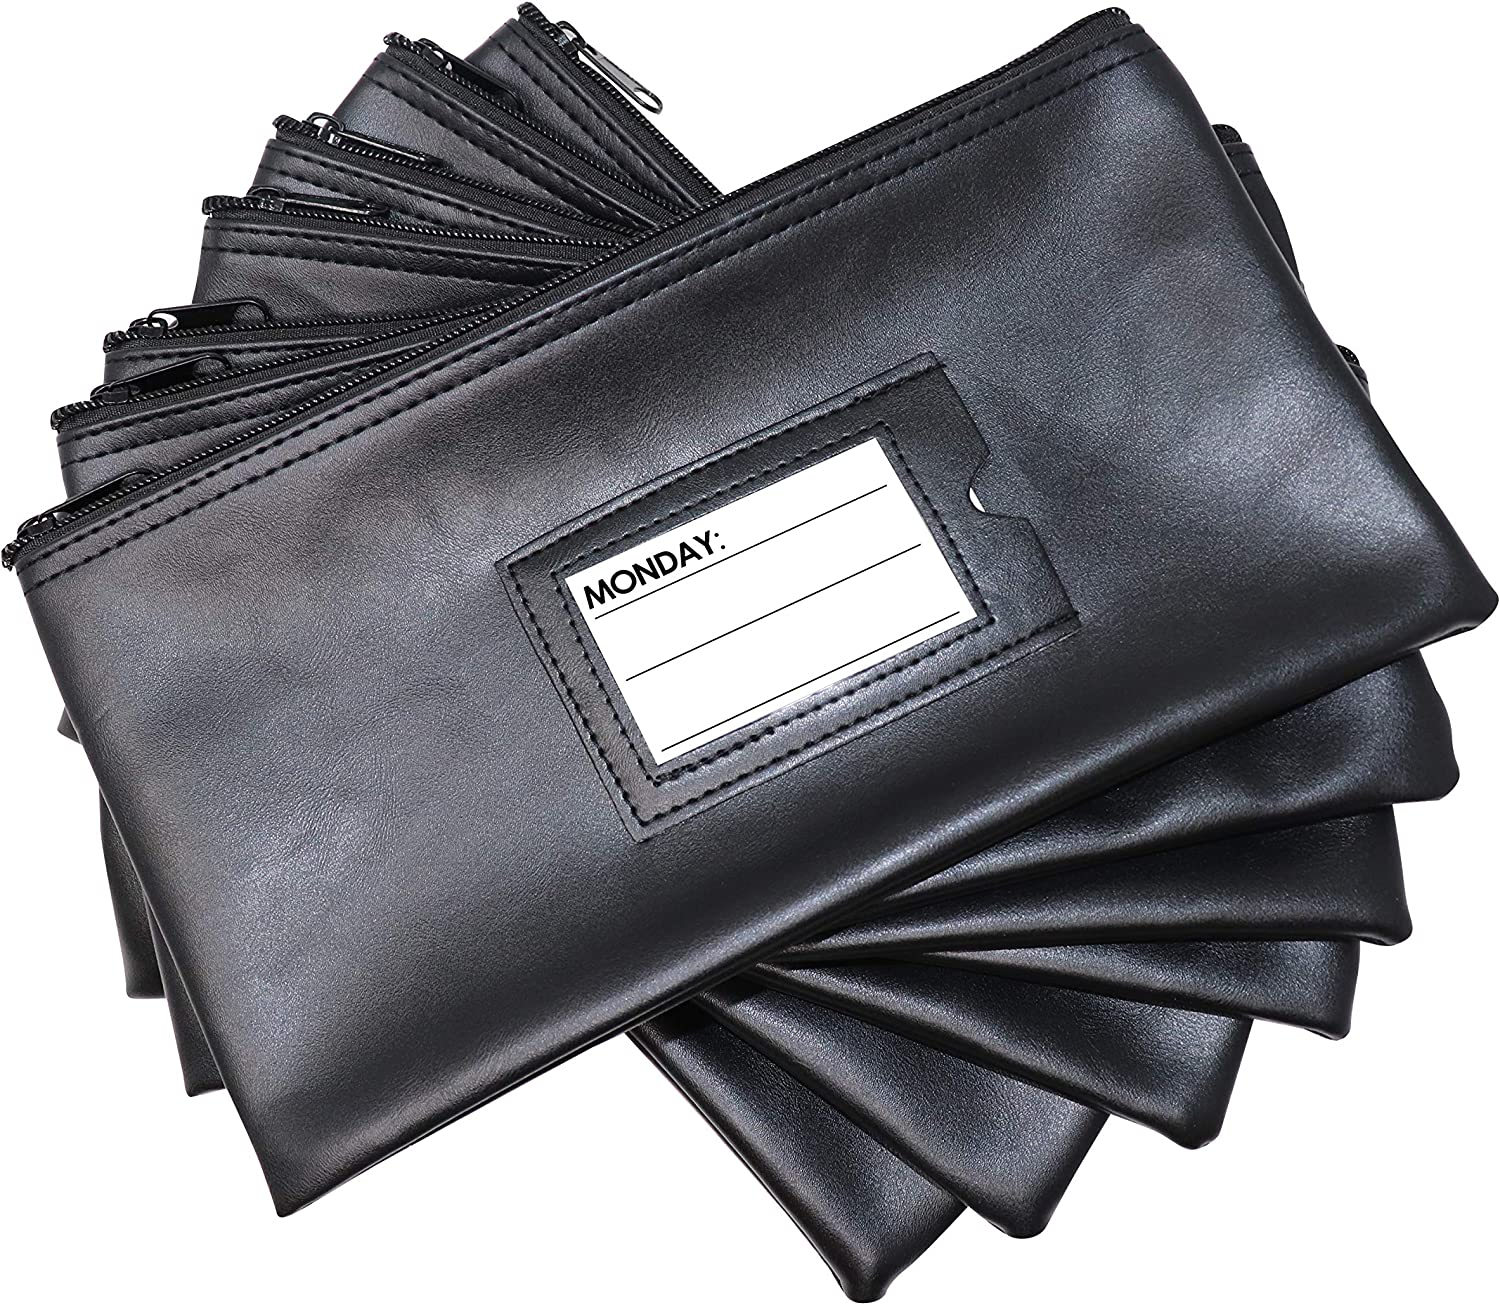 Each Money Bag with Blank Card and Card for Each Day of The Week Multi-Color Nadex 7 Days Bank Deposit Cash and Coin Pouches with Zipper Closure